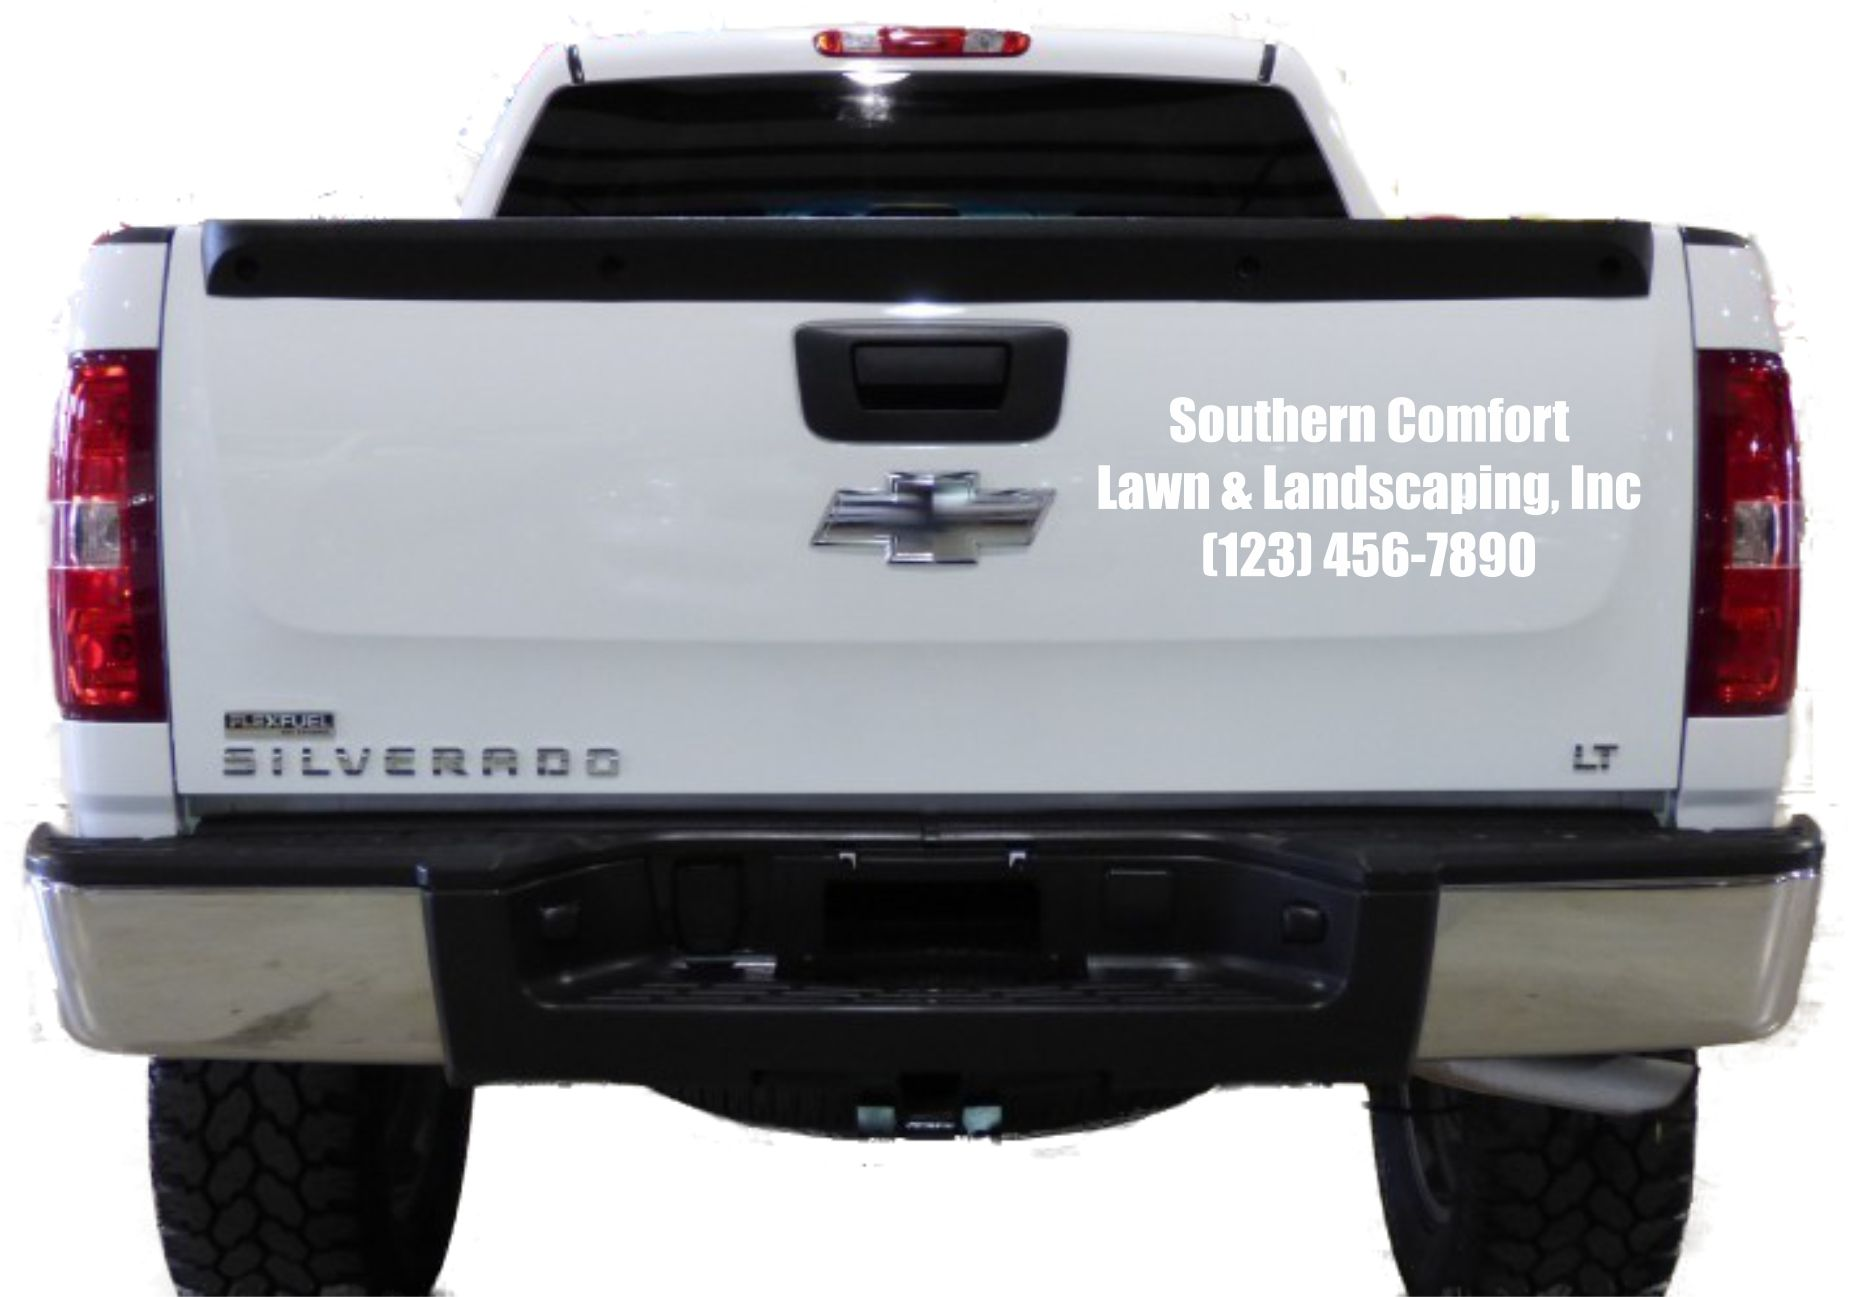 Thanks Southern Comfort For Your Tailgate Vinyl Decal Order - Custom vinyl lettering car decals